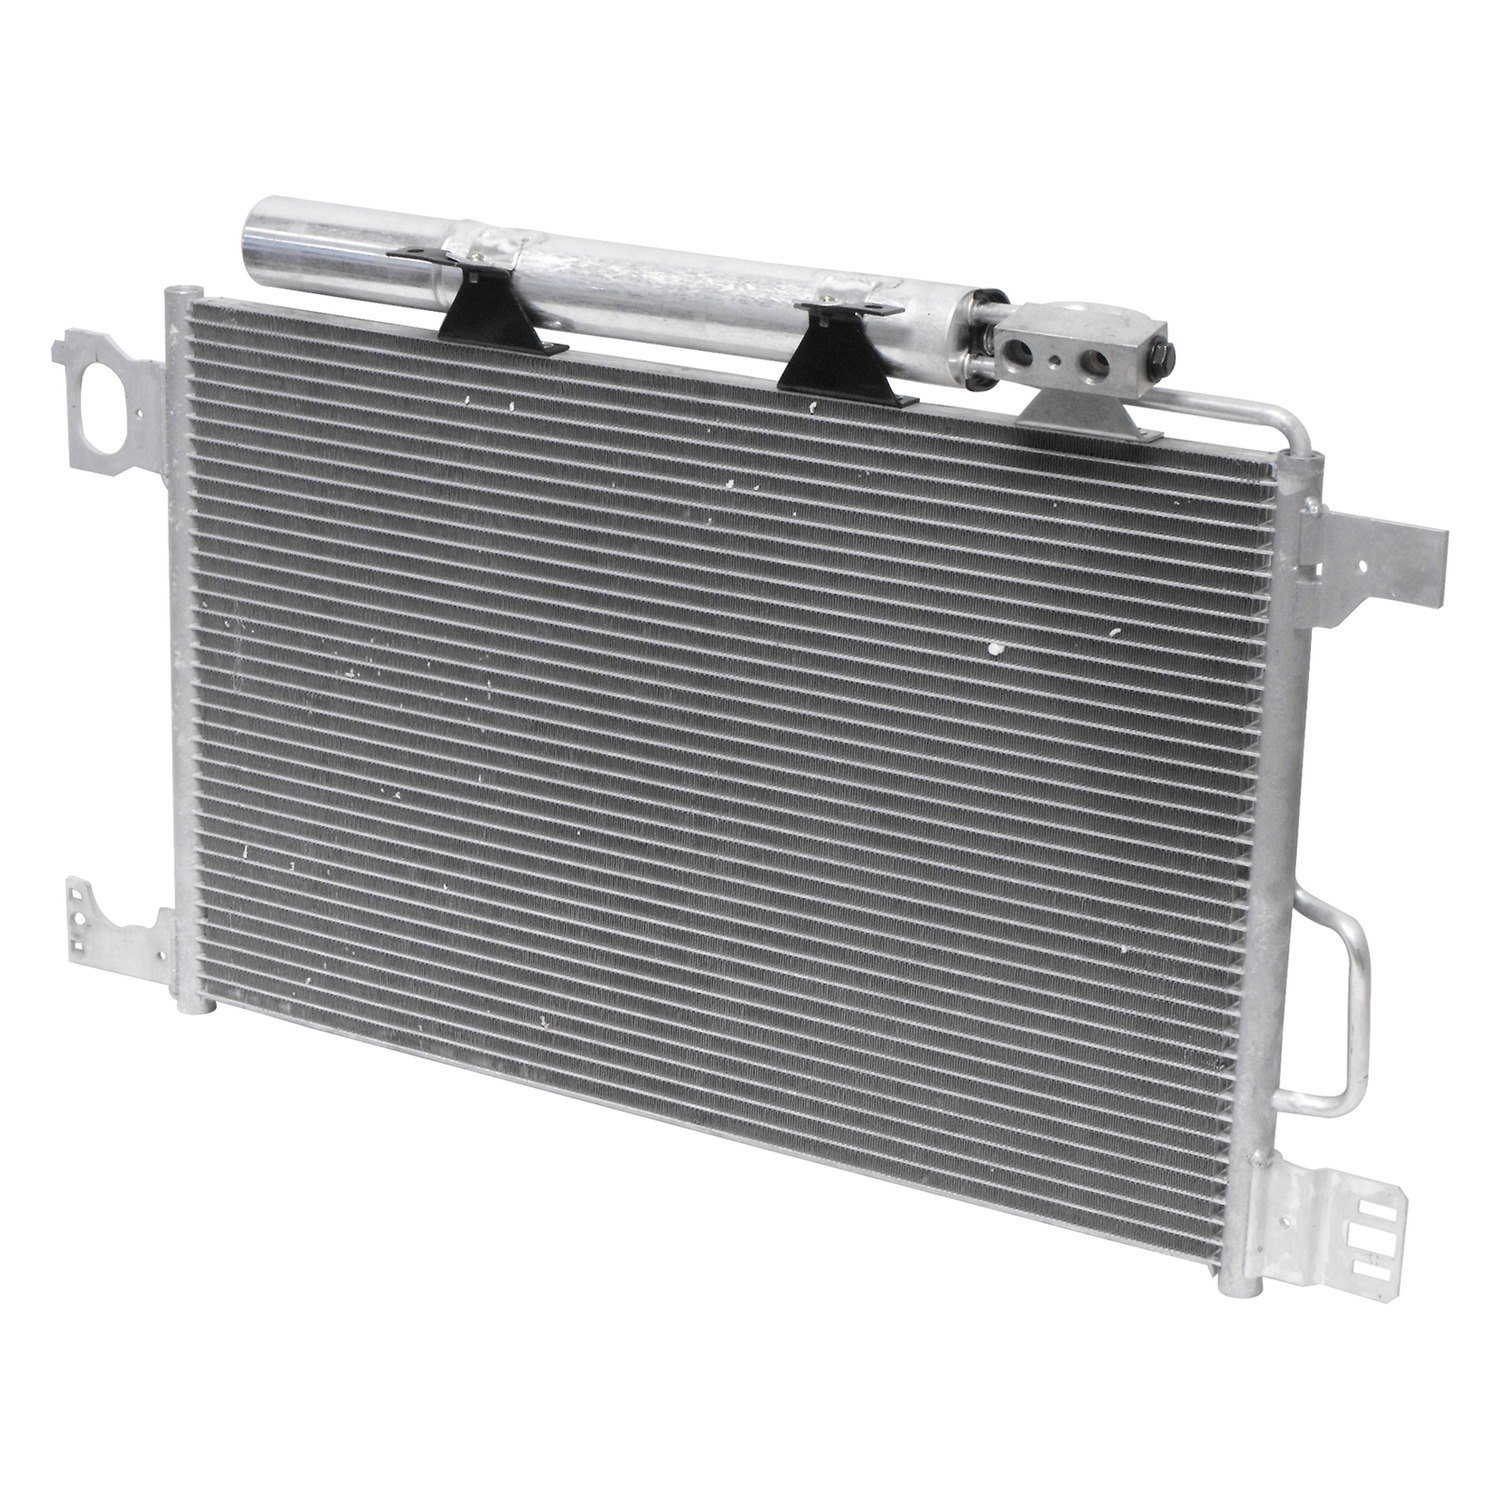 #666368 UAC® Mercedes CLK350 / CLK500 / CLK55 AMG MFI 2006 A/C  Brand New 10441 Air Conditioner Parts For Cars images with 1500x1500 px on helpvideos.info - Air Conditioners, Air Coolers and more